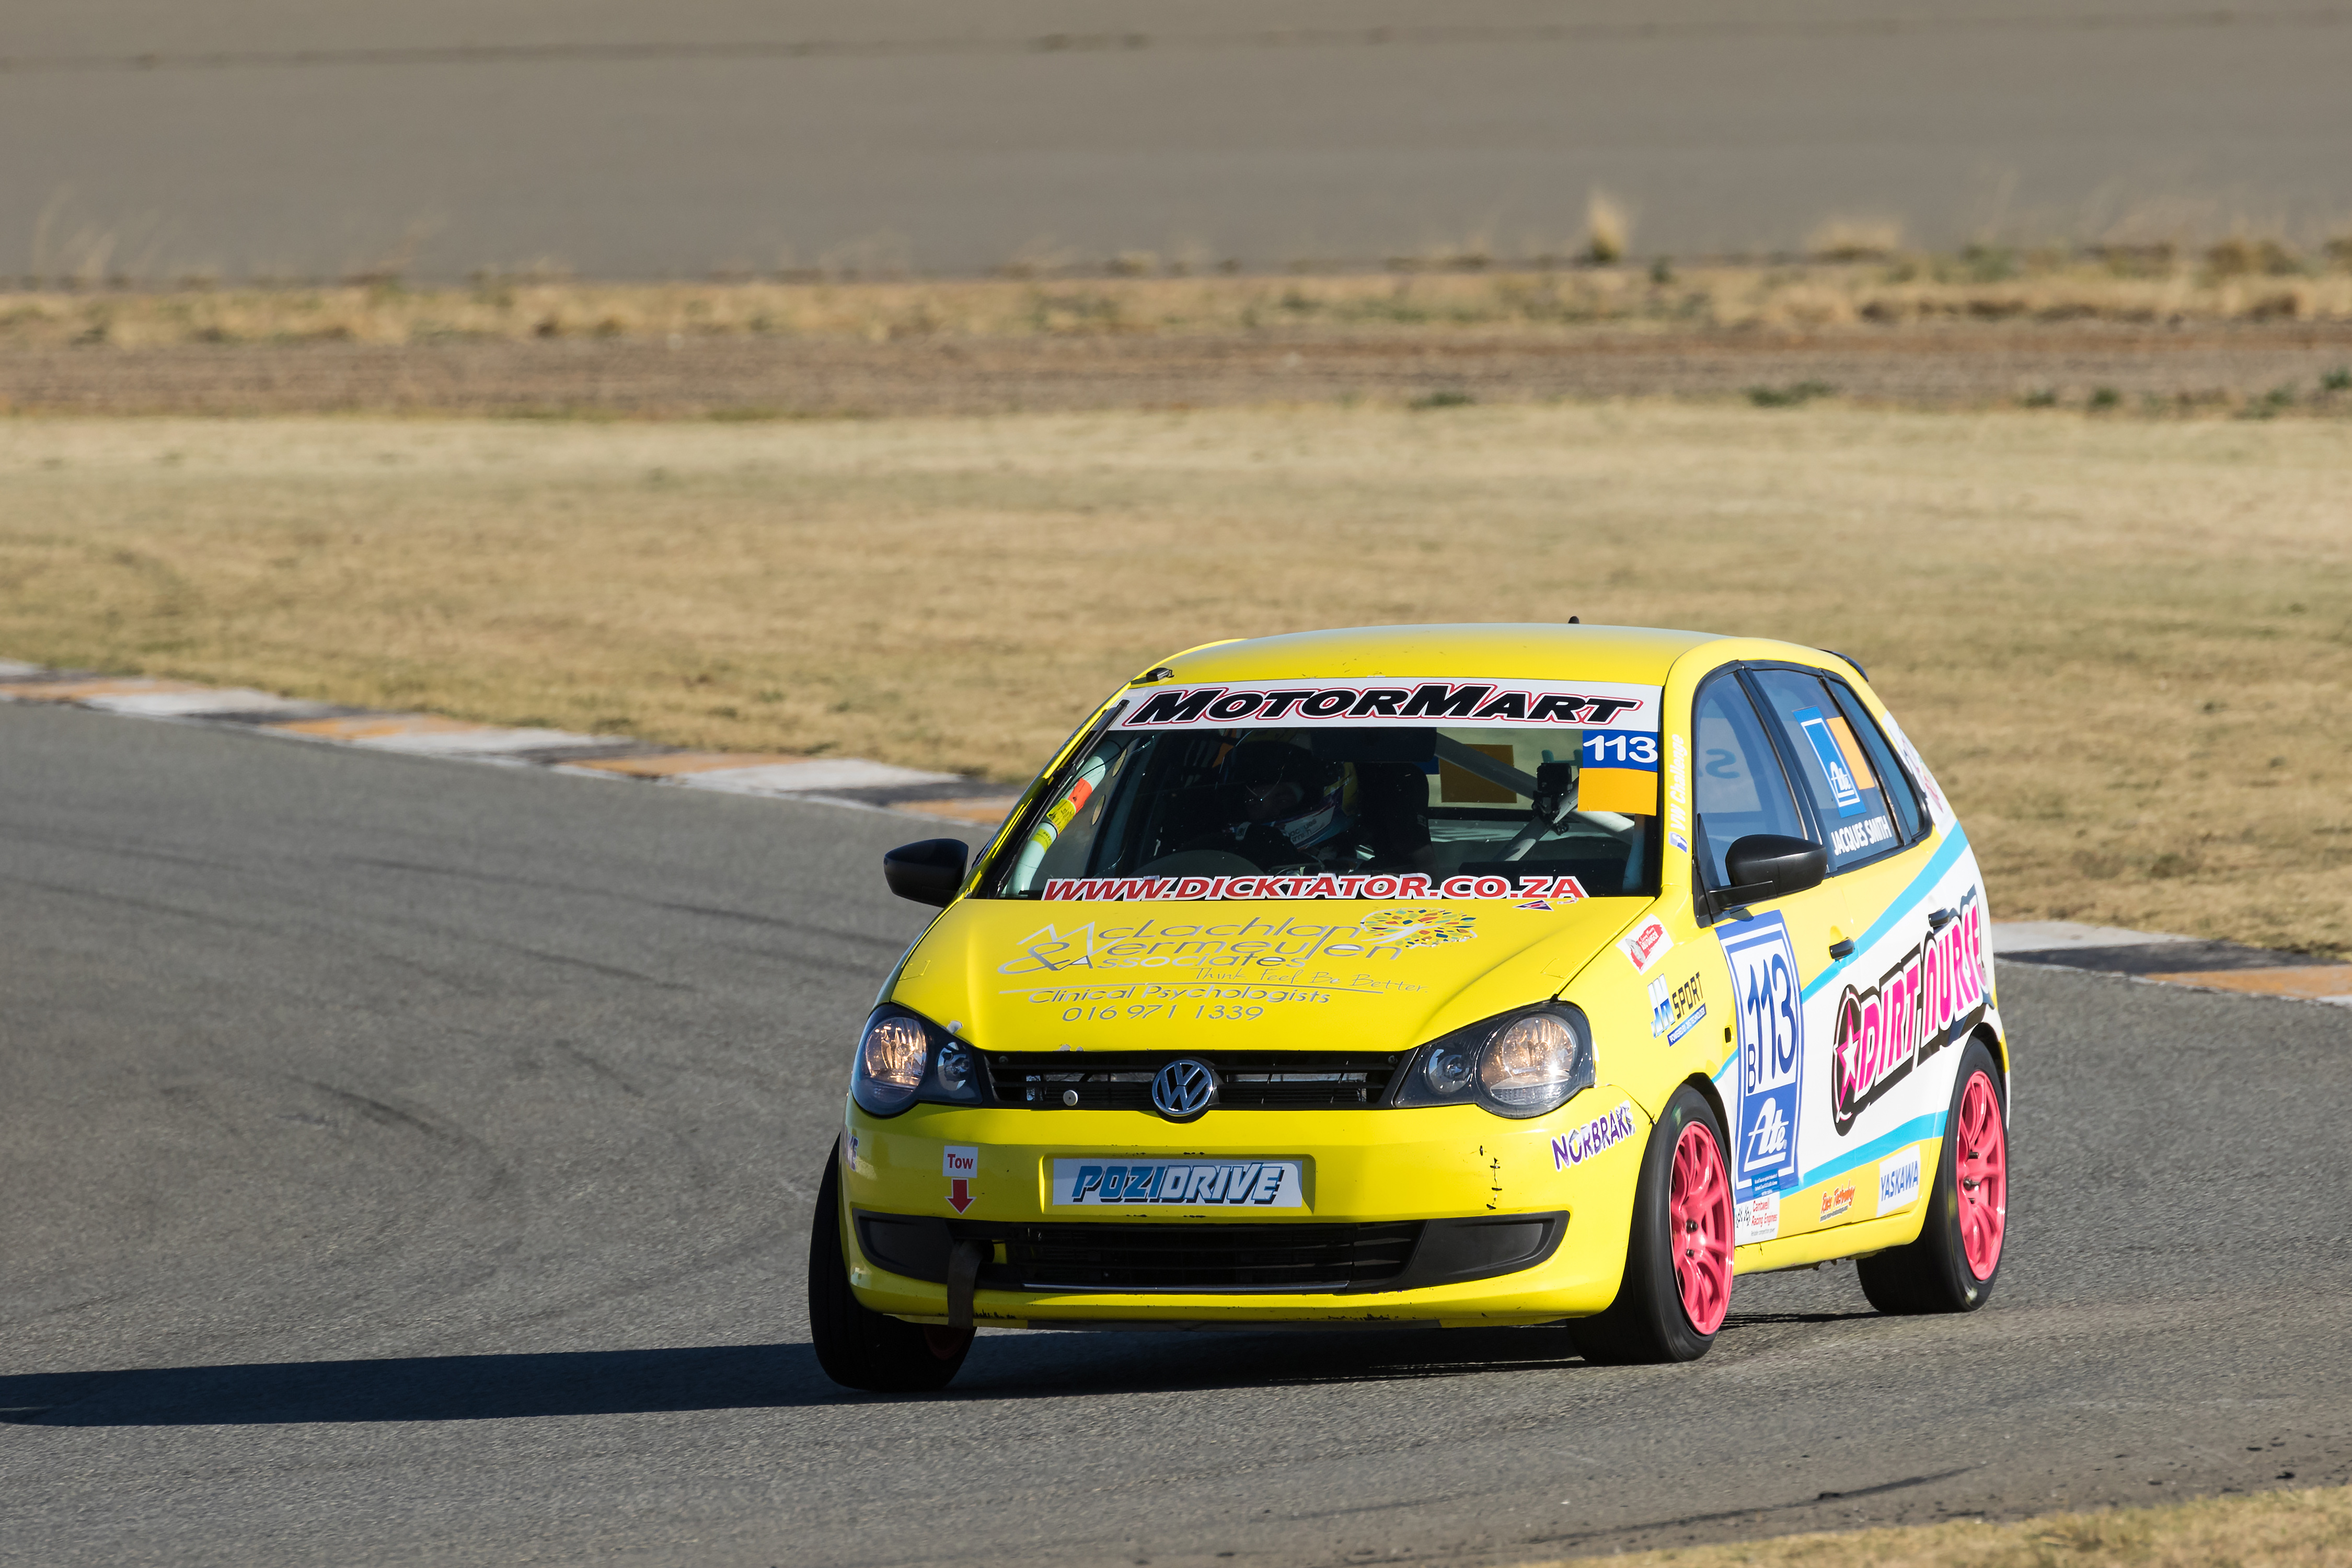 Jacques Smith leads the way in Class B